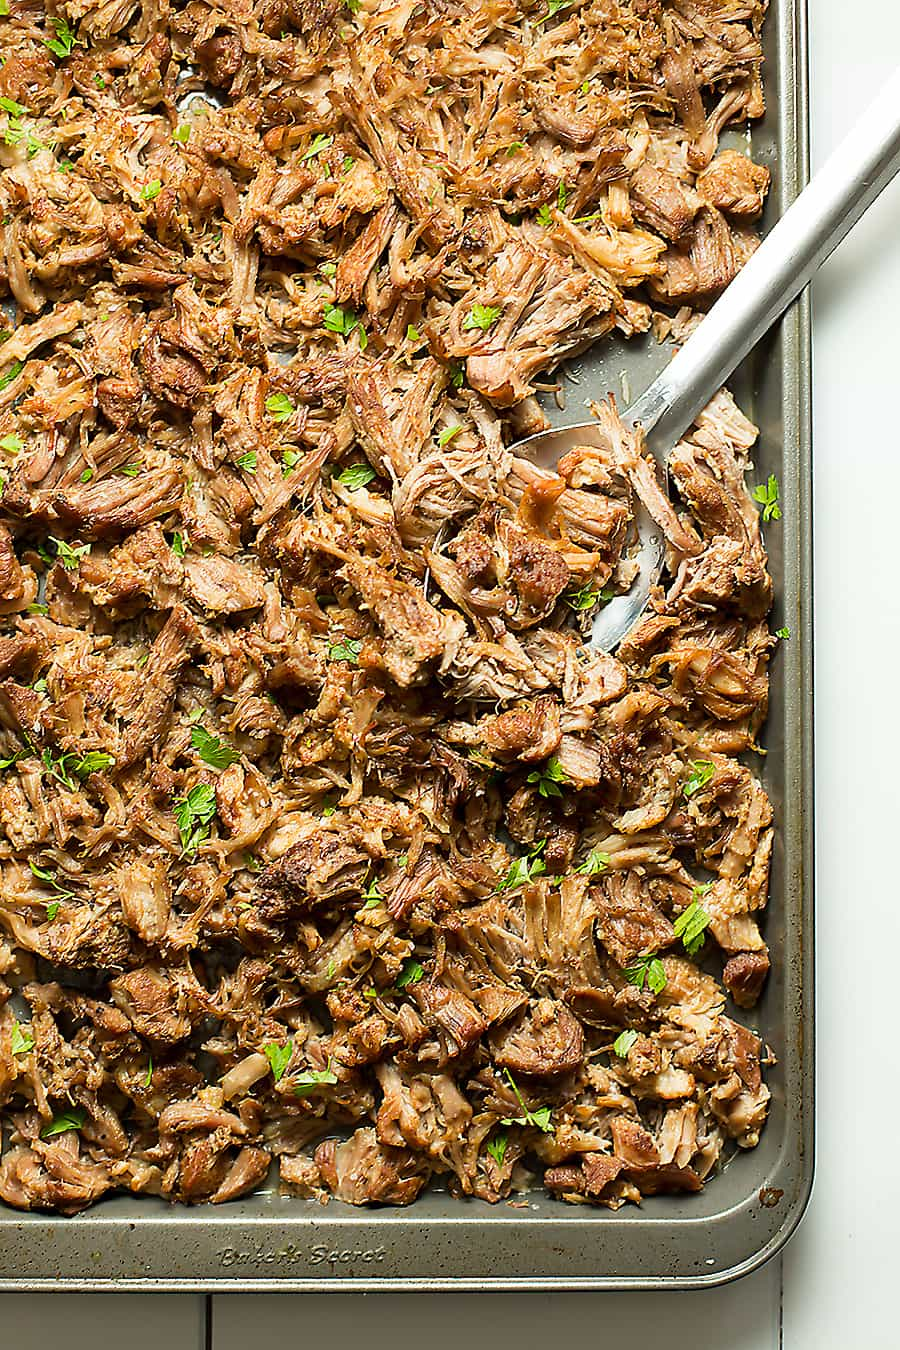 These pork carnitas are easy to make when you use your Instant Pot Pressure Cooker! Pork carnitas in about an hour, heck yes!